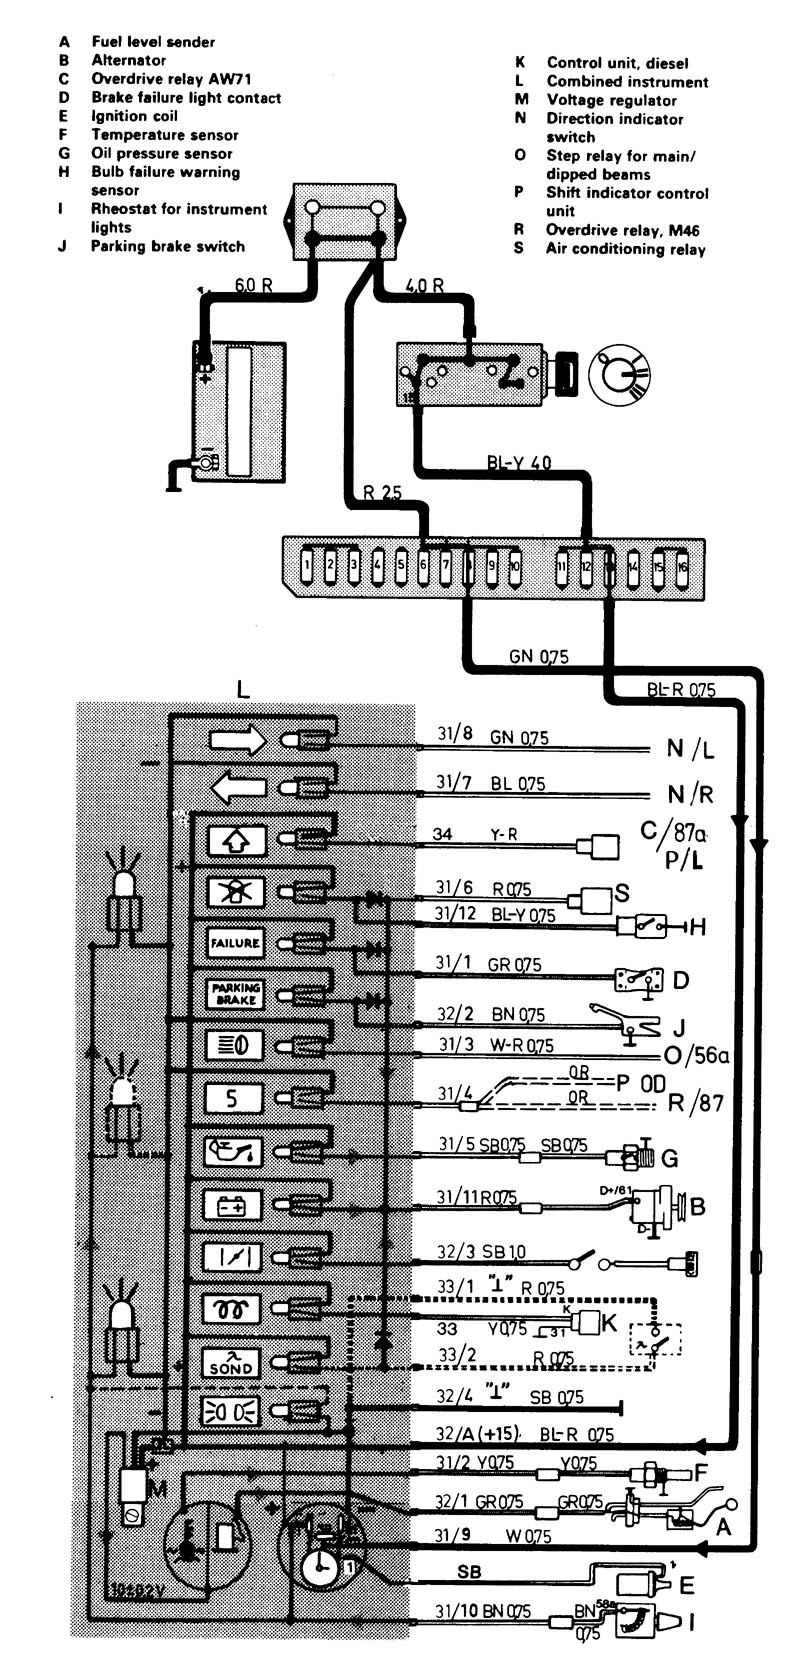 Volvo Wiring Diagram Instrumentation on Fuse Box Wiring Diagram